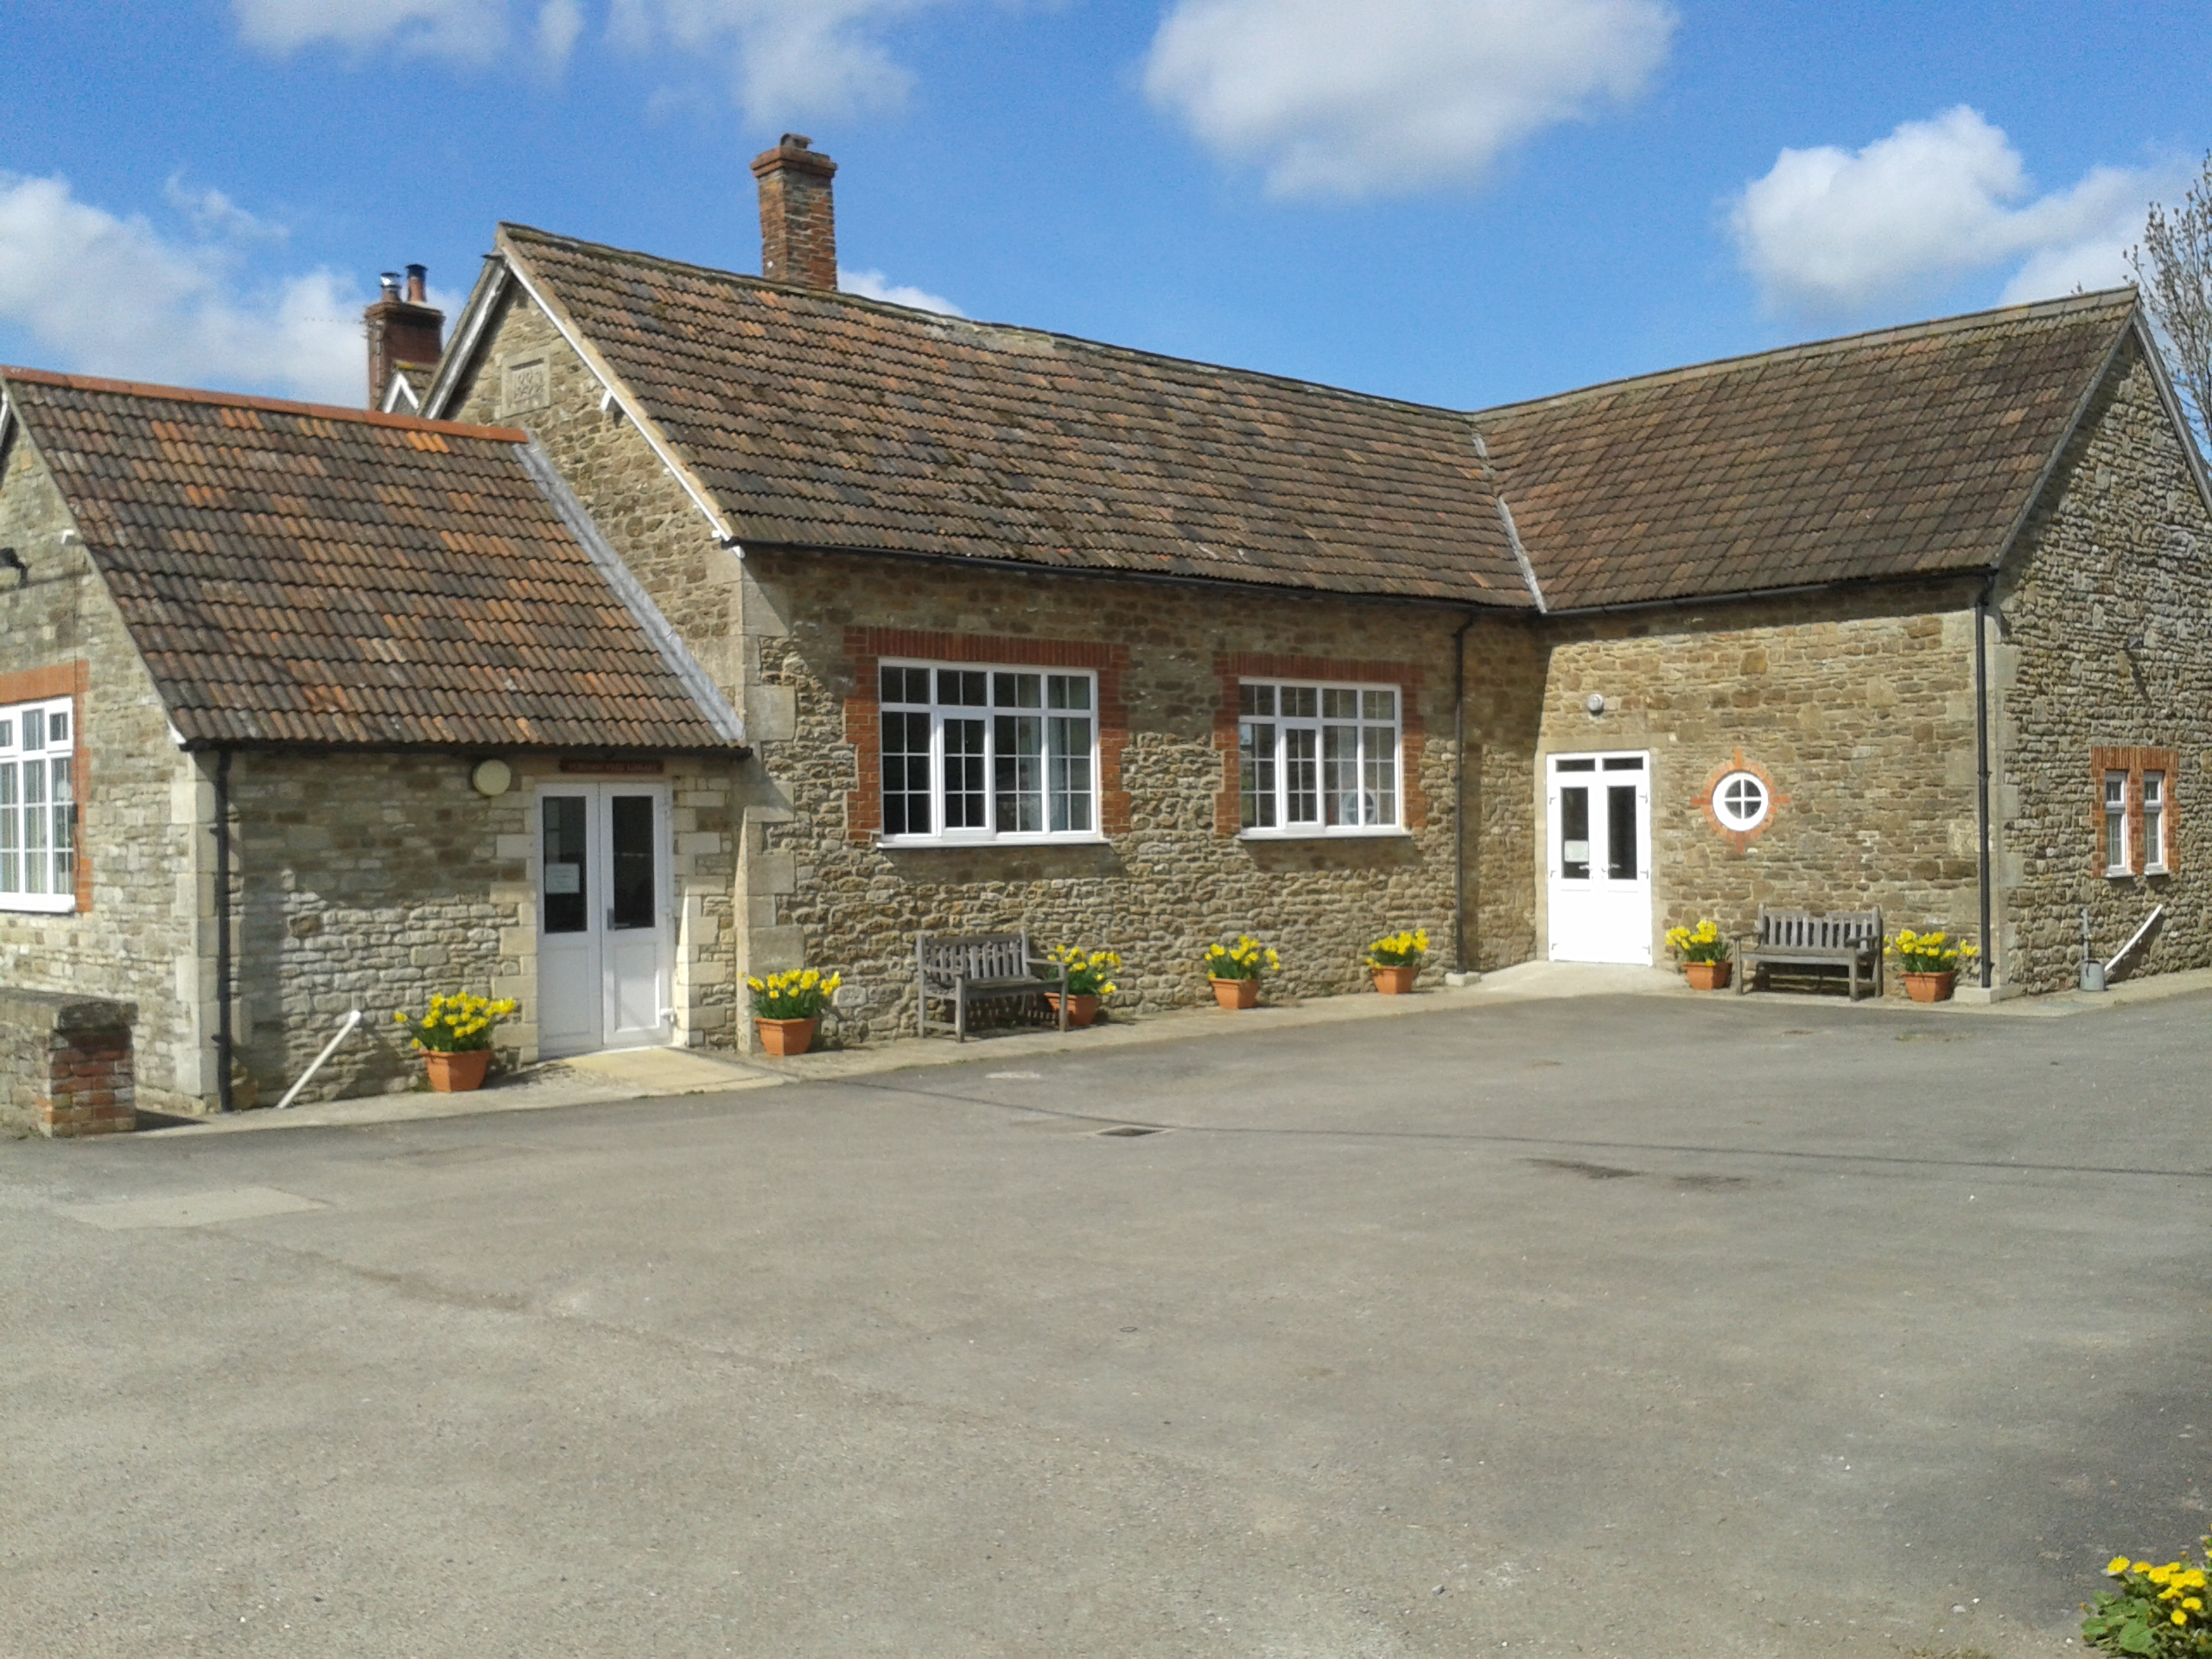 Foxham Reading Room & Village Hall